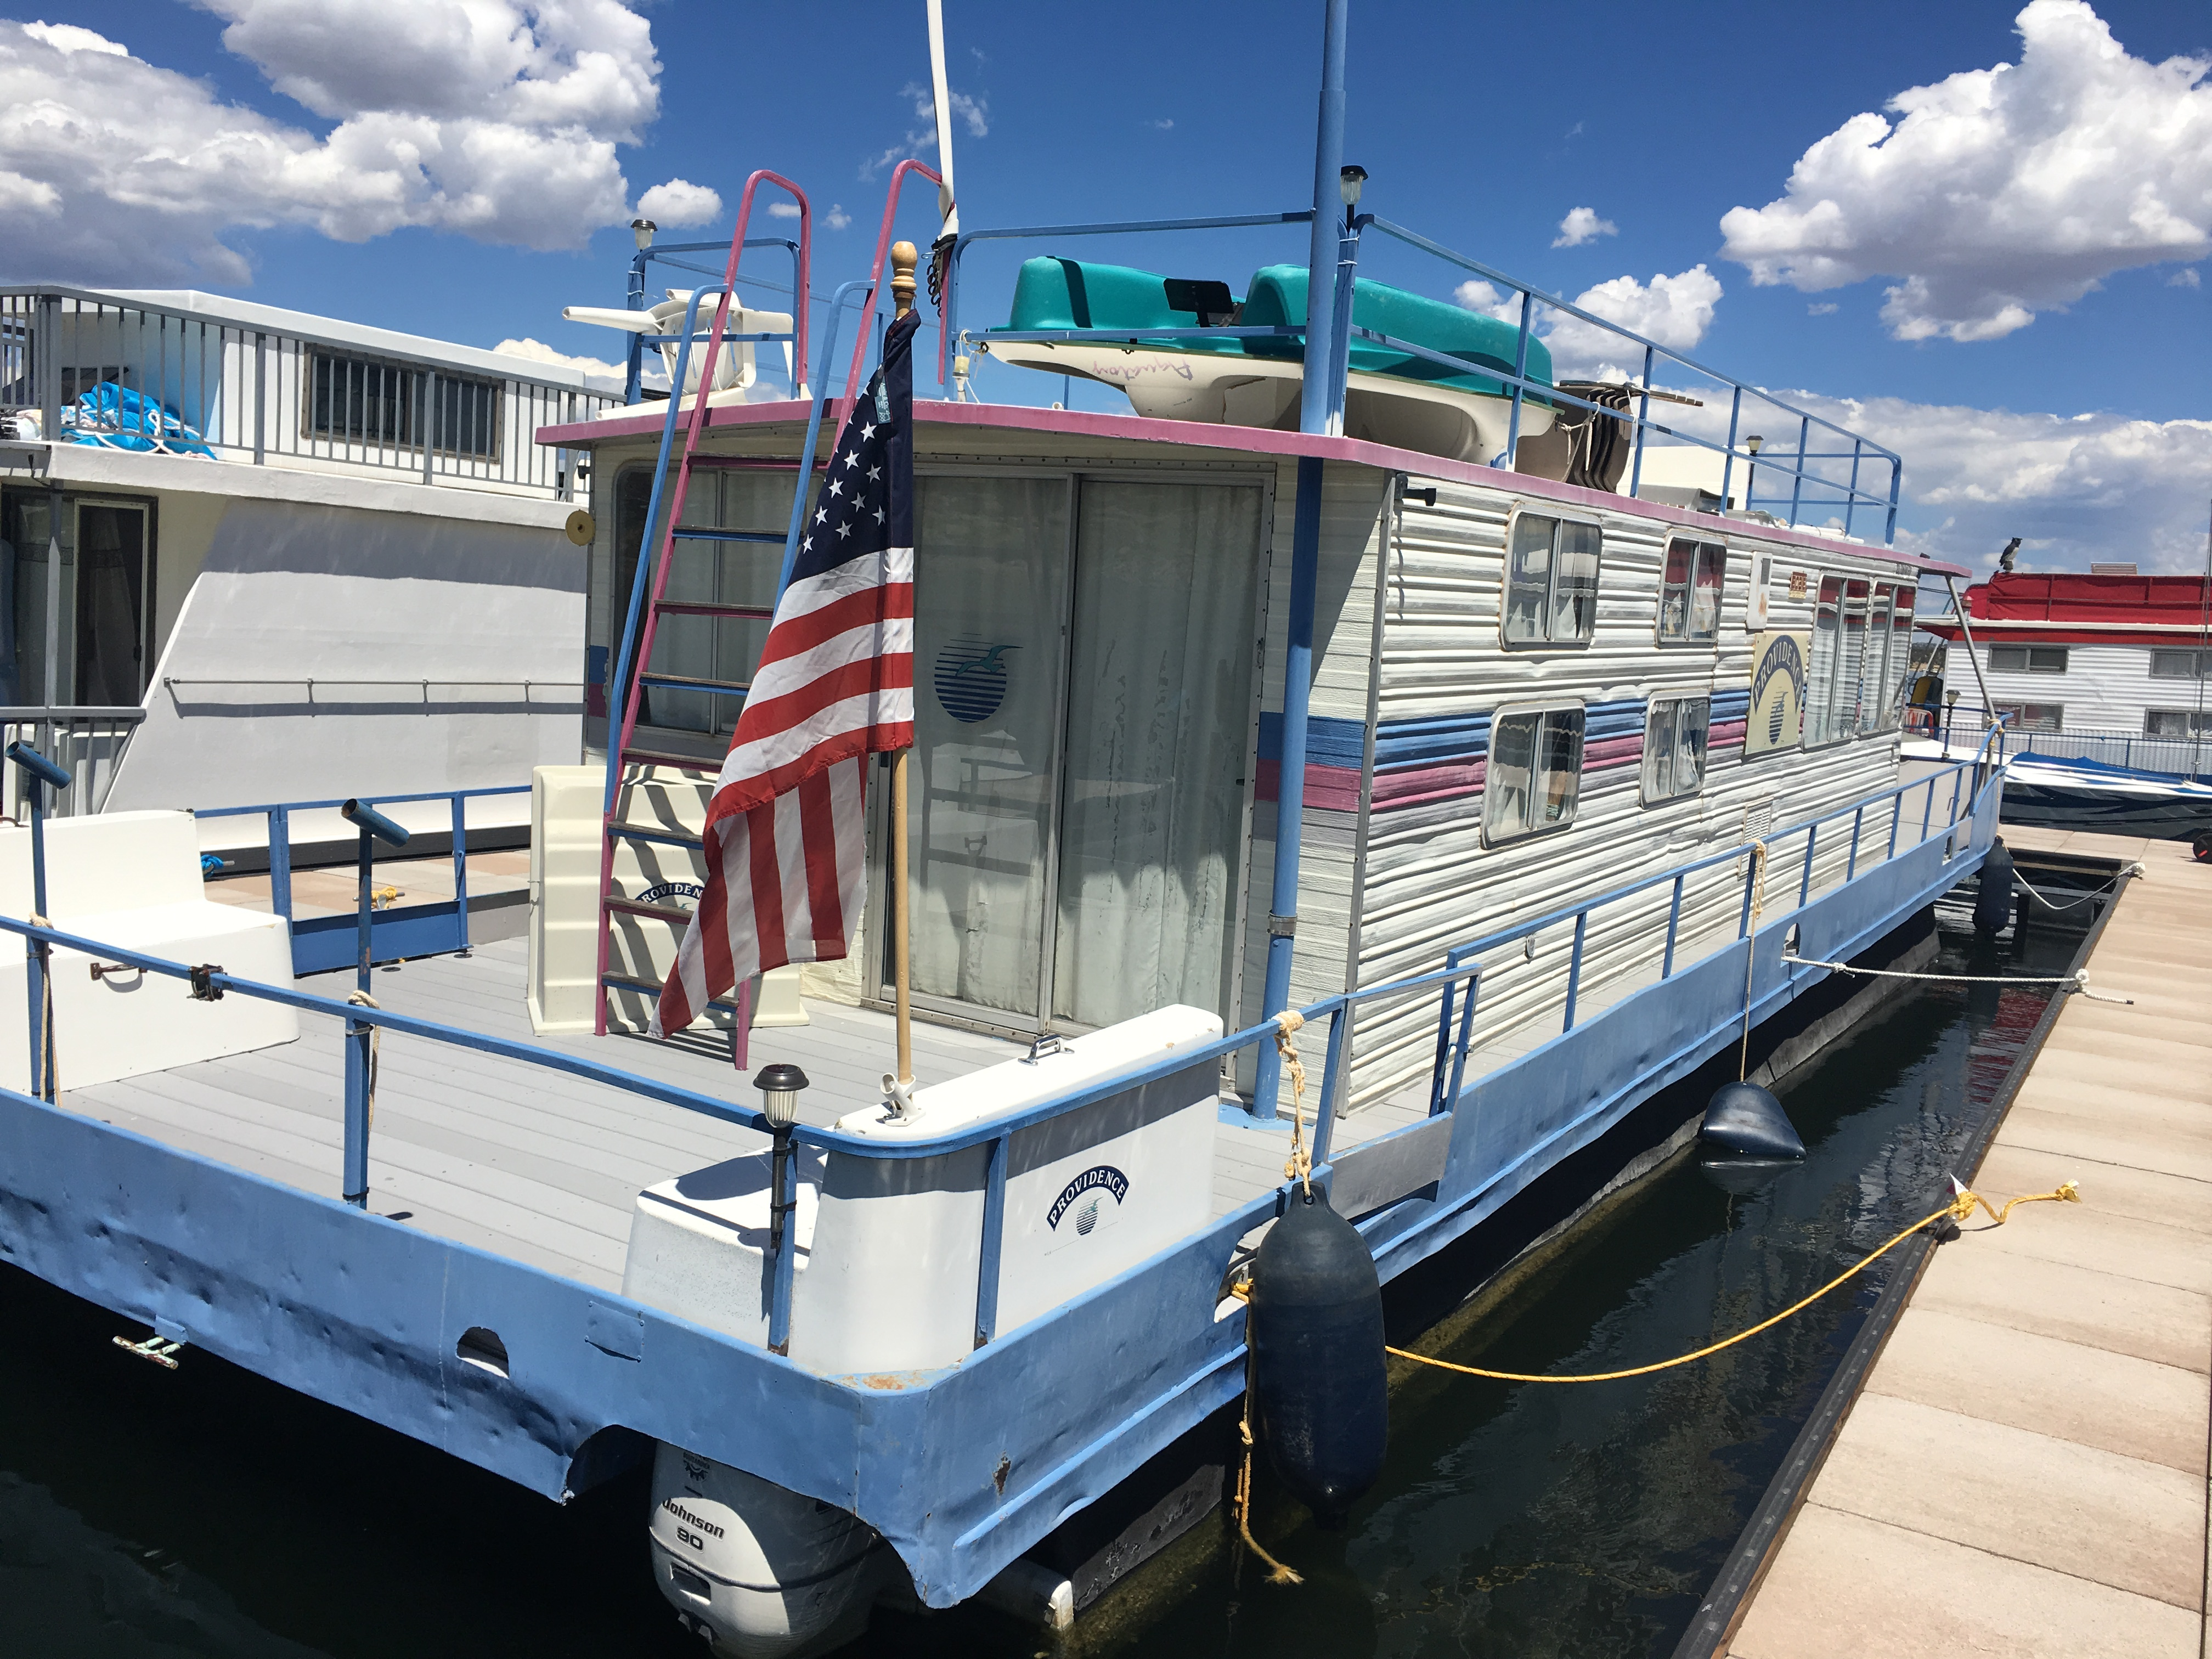 Pontoon boats with bathroom for sale - This Boat Is Sold As Is Condition Asking Price 25 000